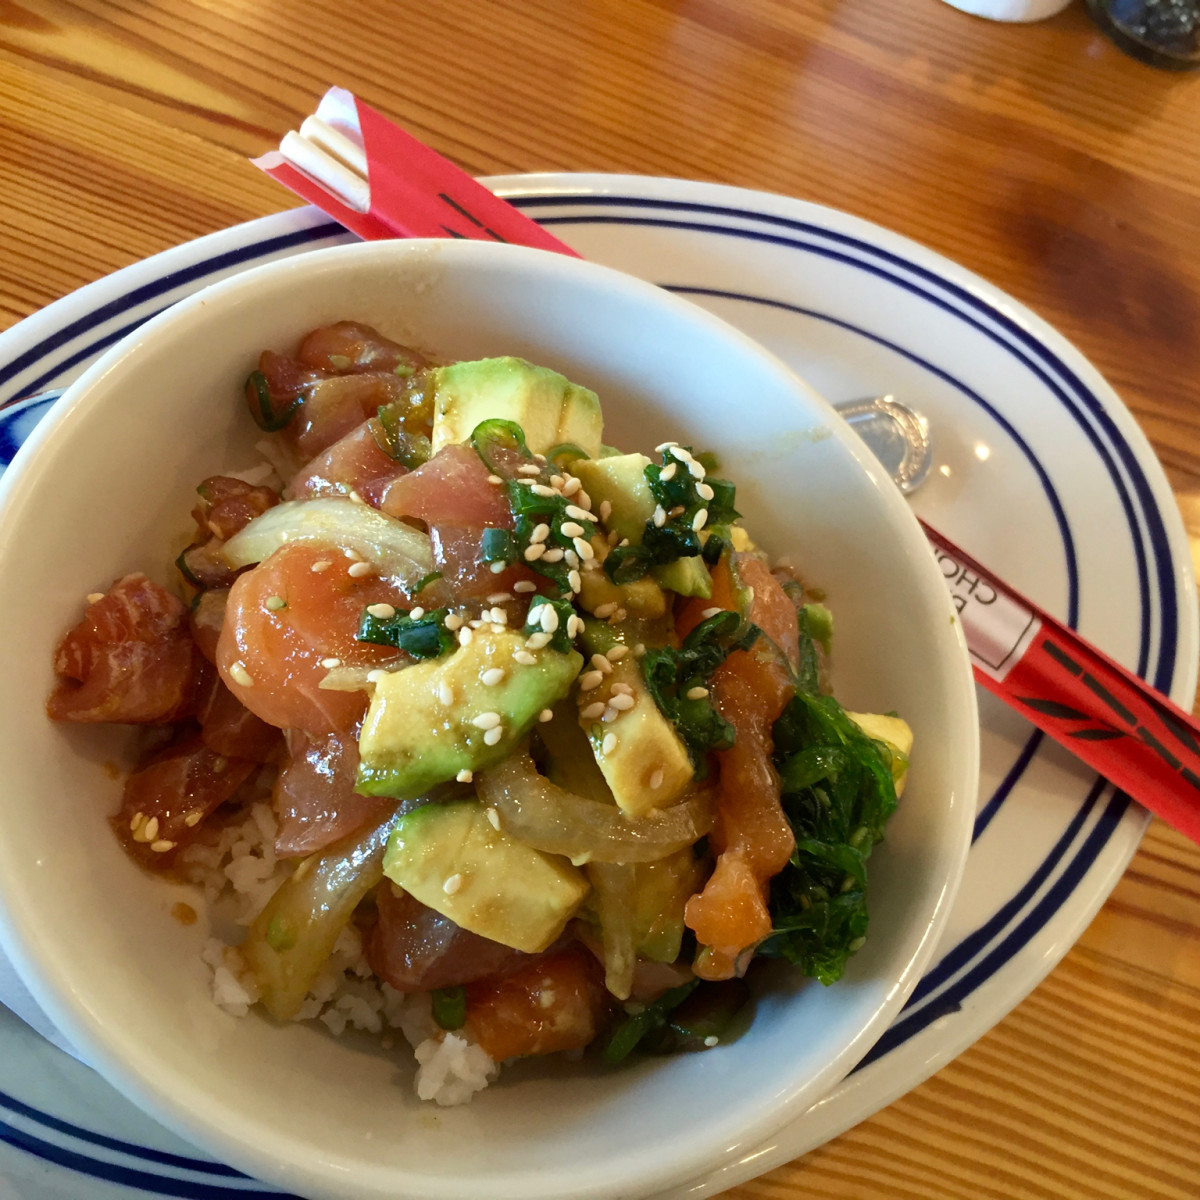 Little Liberty poke salad